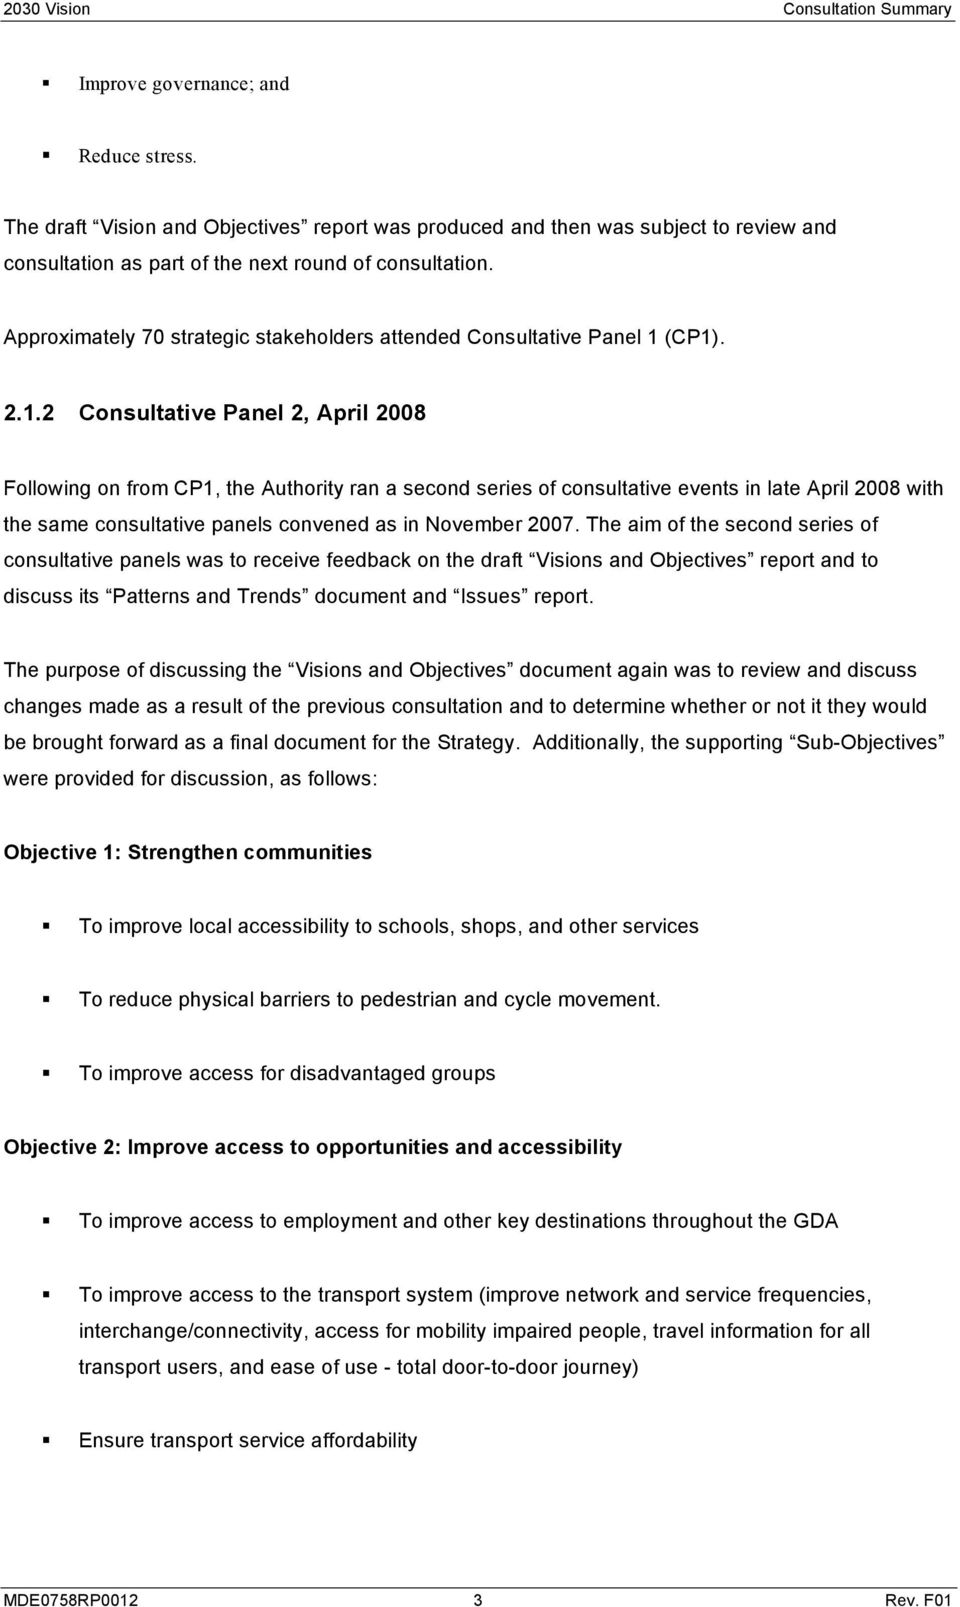 (CP1). 2.1.2 Consultative Panel 2, April 2008 Following on from CP1, the Authority ran a second series of consultative events in late April 2008 with the same consultative panels convened as in